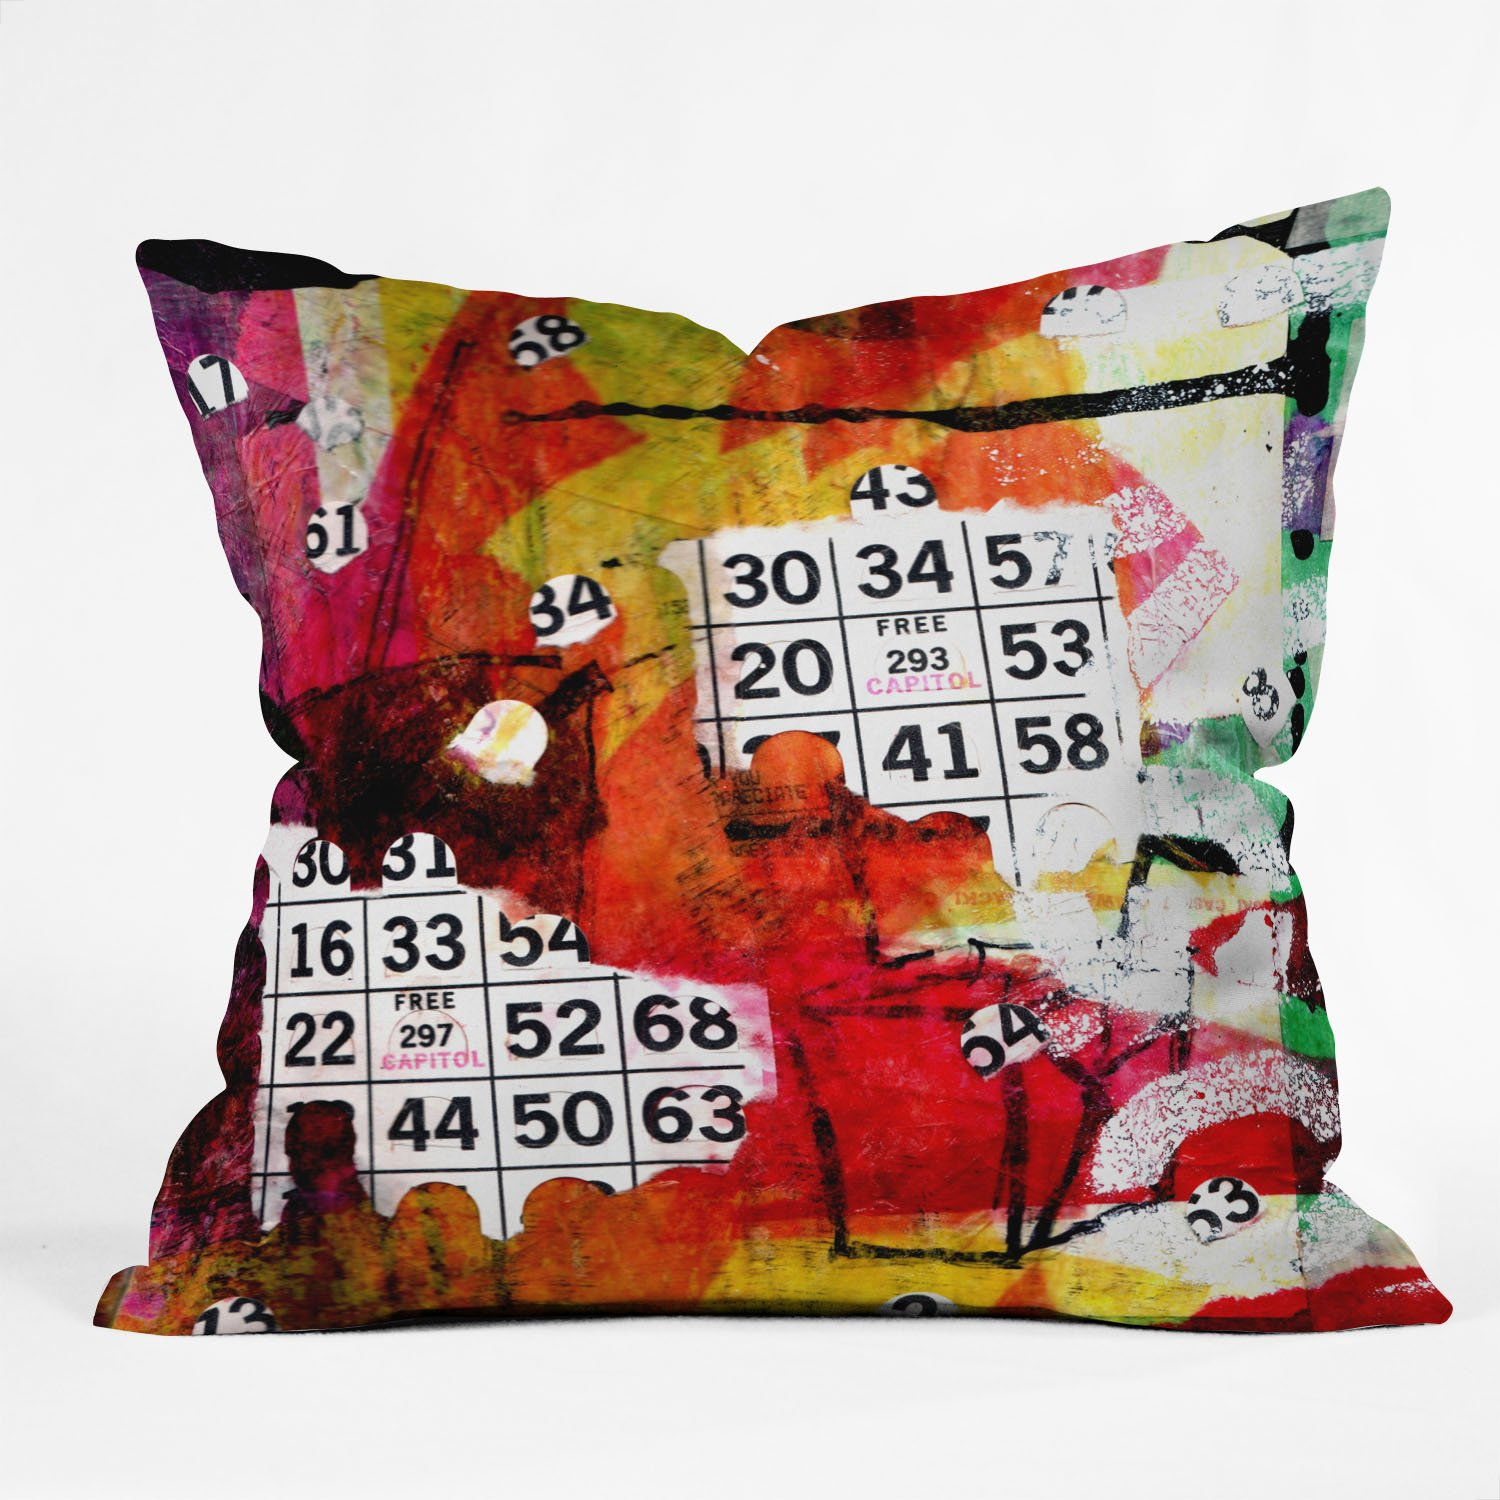 Deny Designs Sophia Buddenhagen Bright Bingo 2 Throw Pillow, 26 x 26